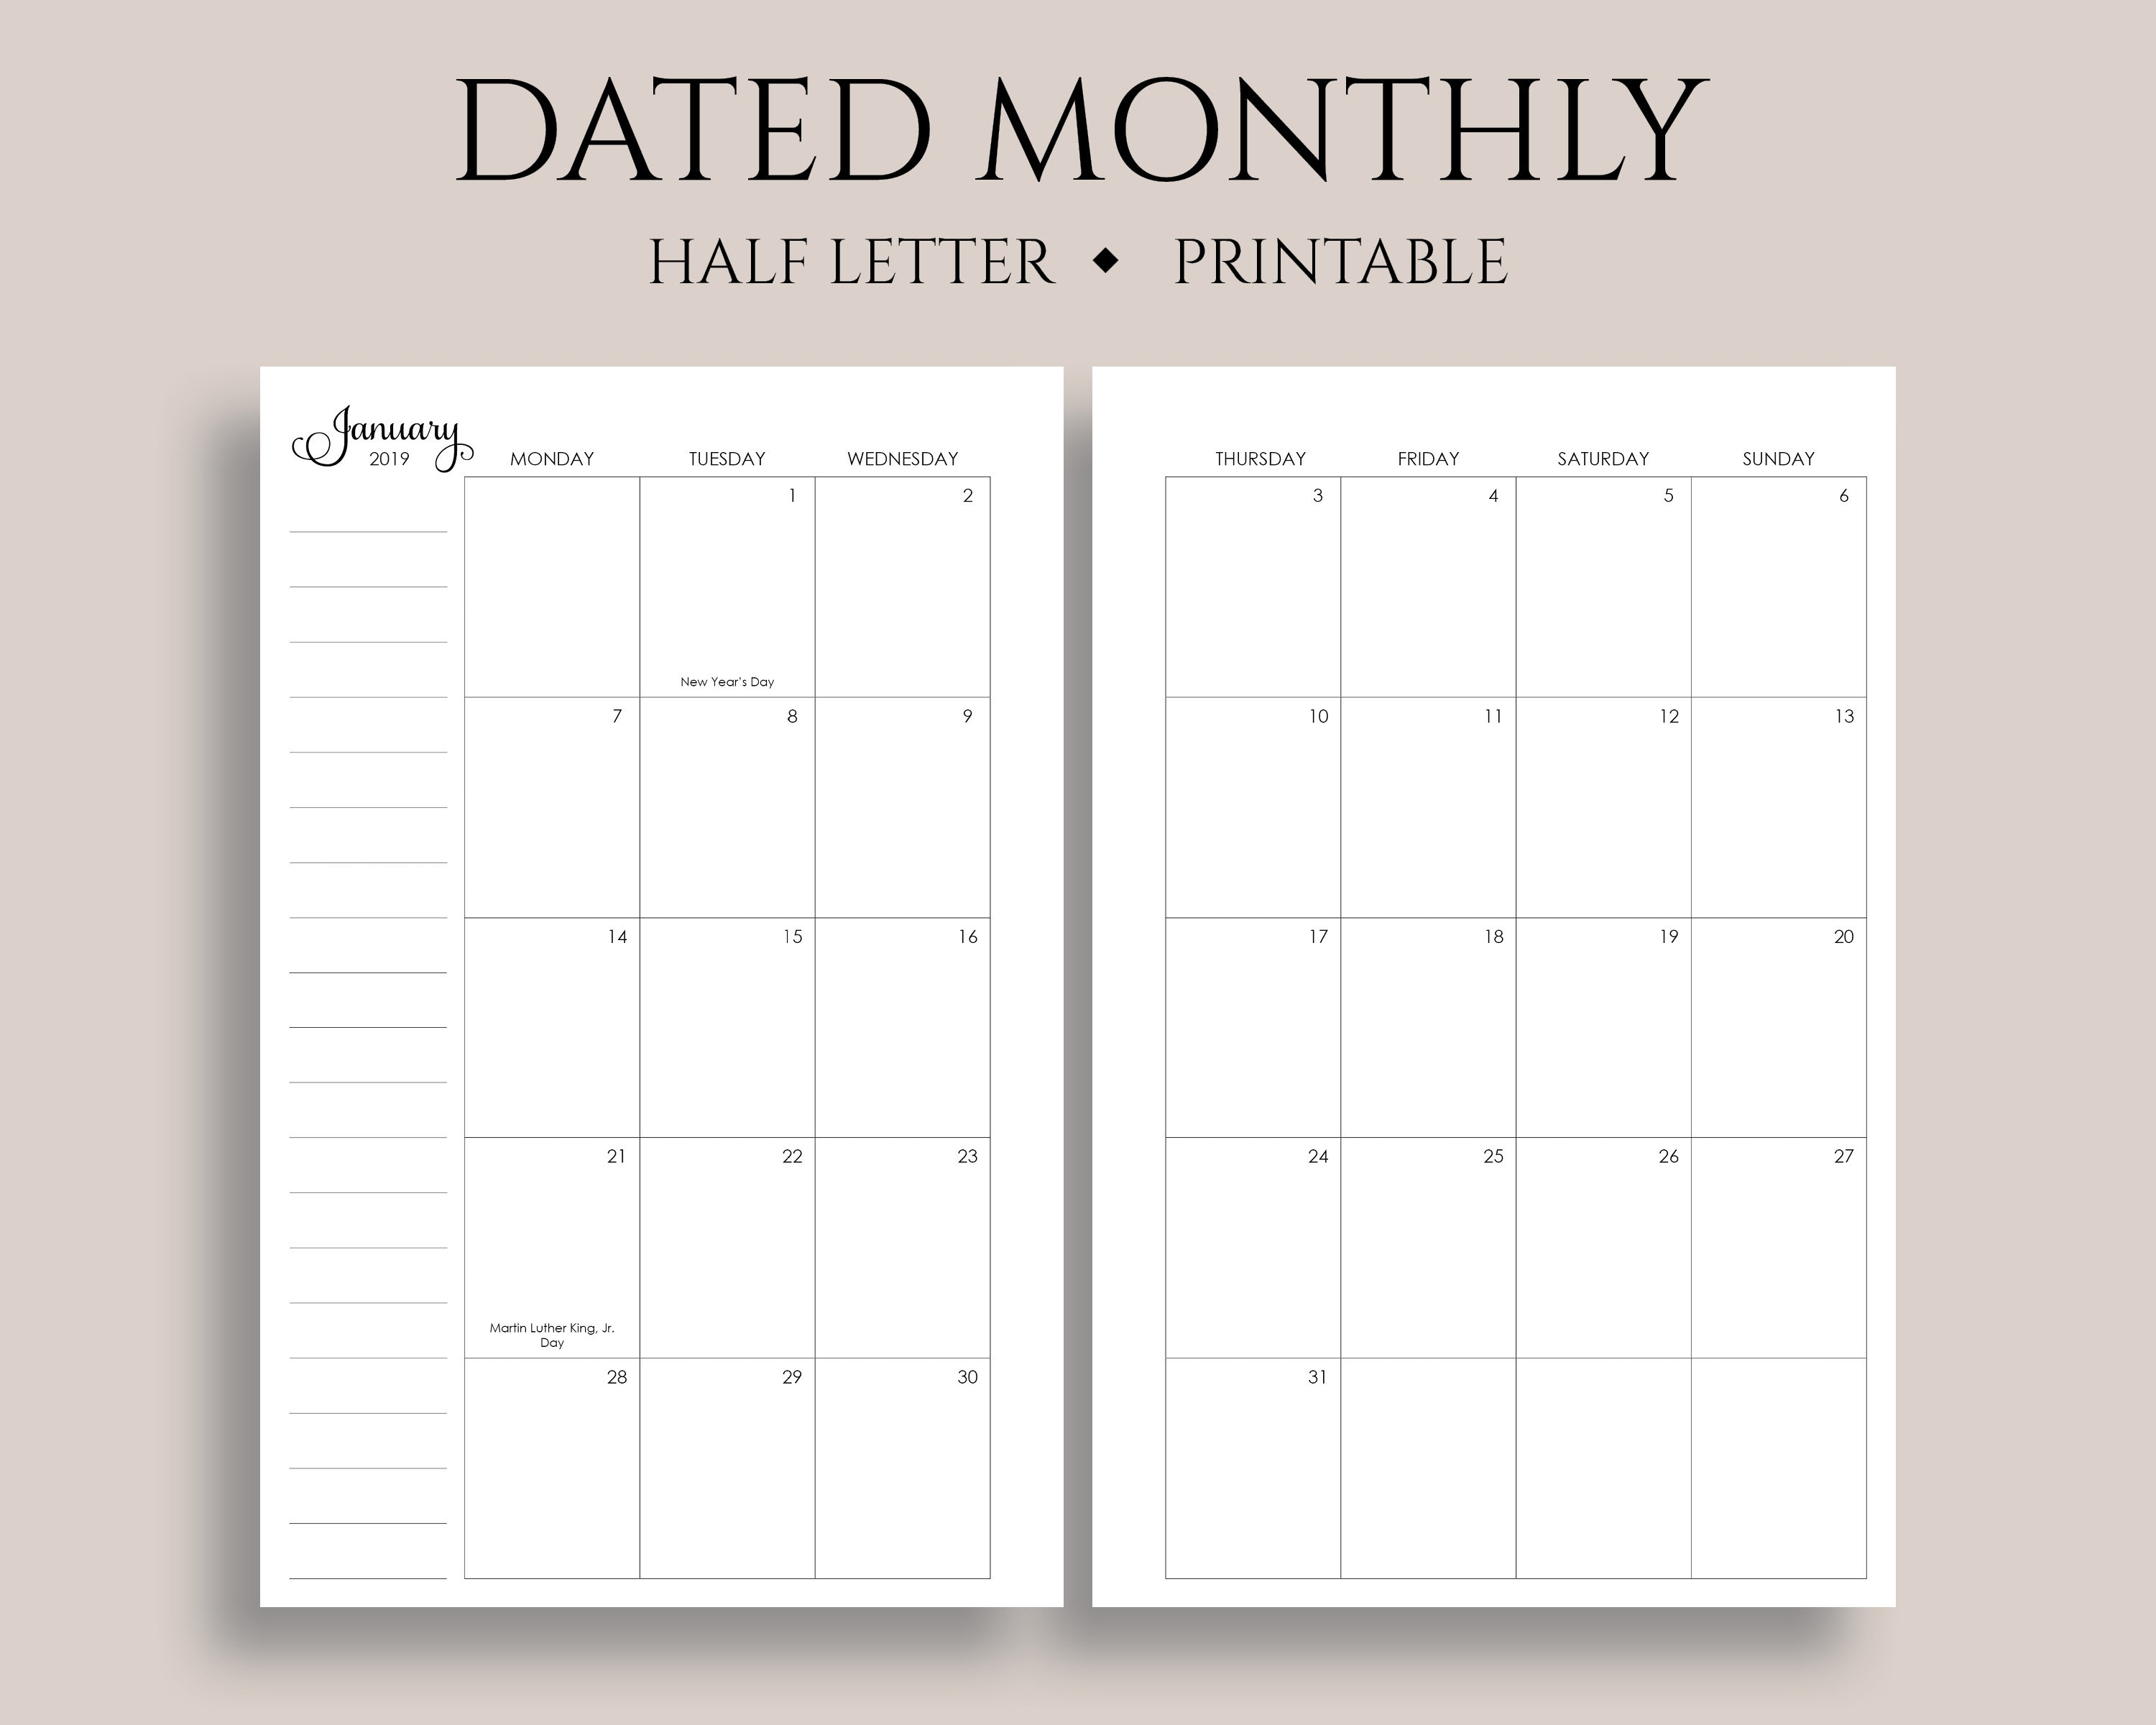 2019 Dated Monthly Calendar Printable Planner Inserts Monday